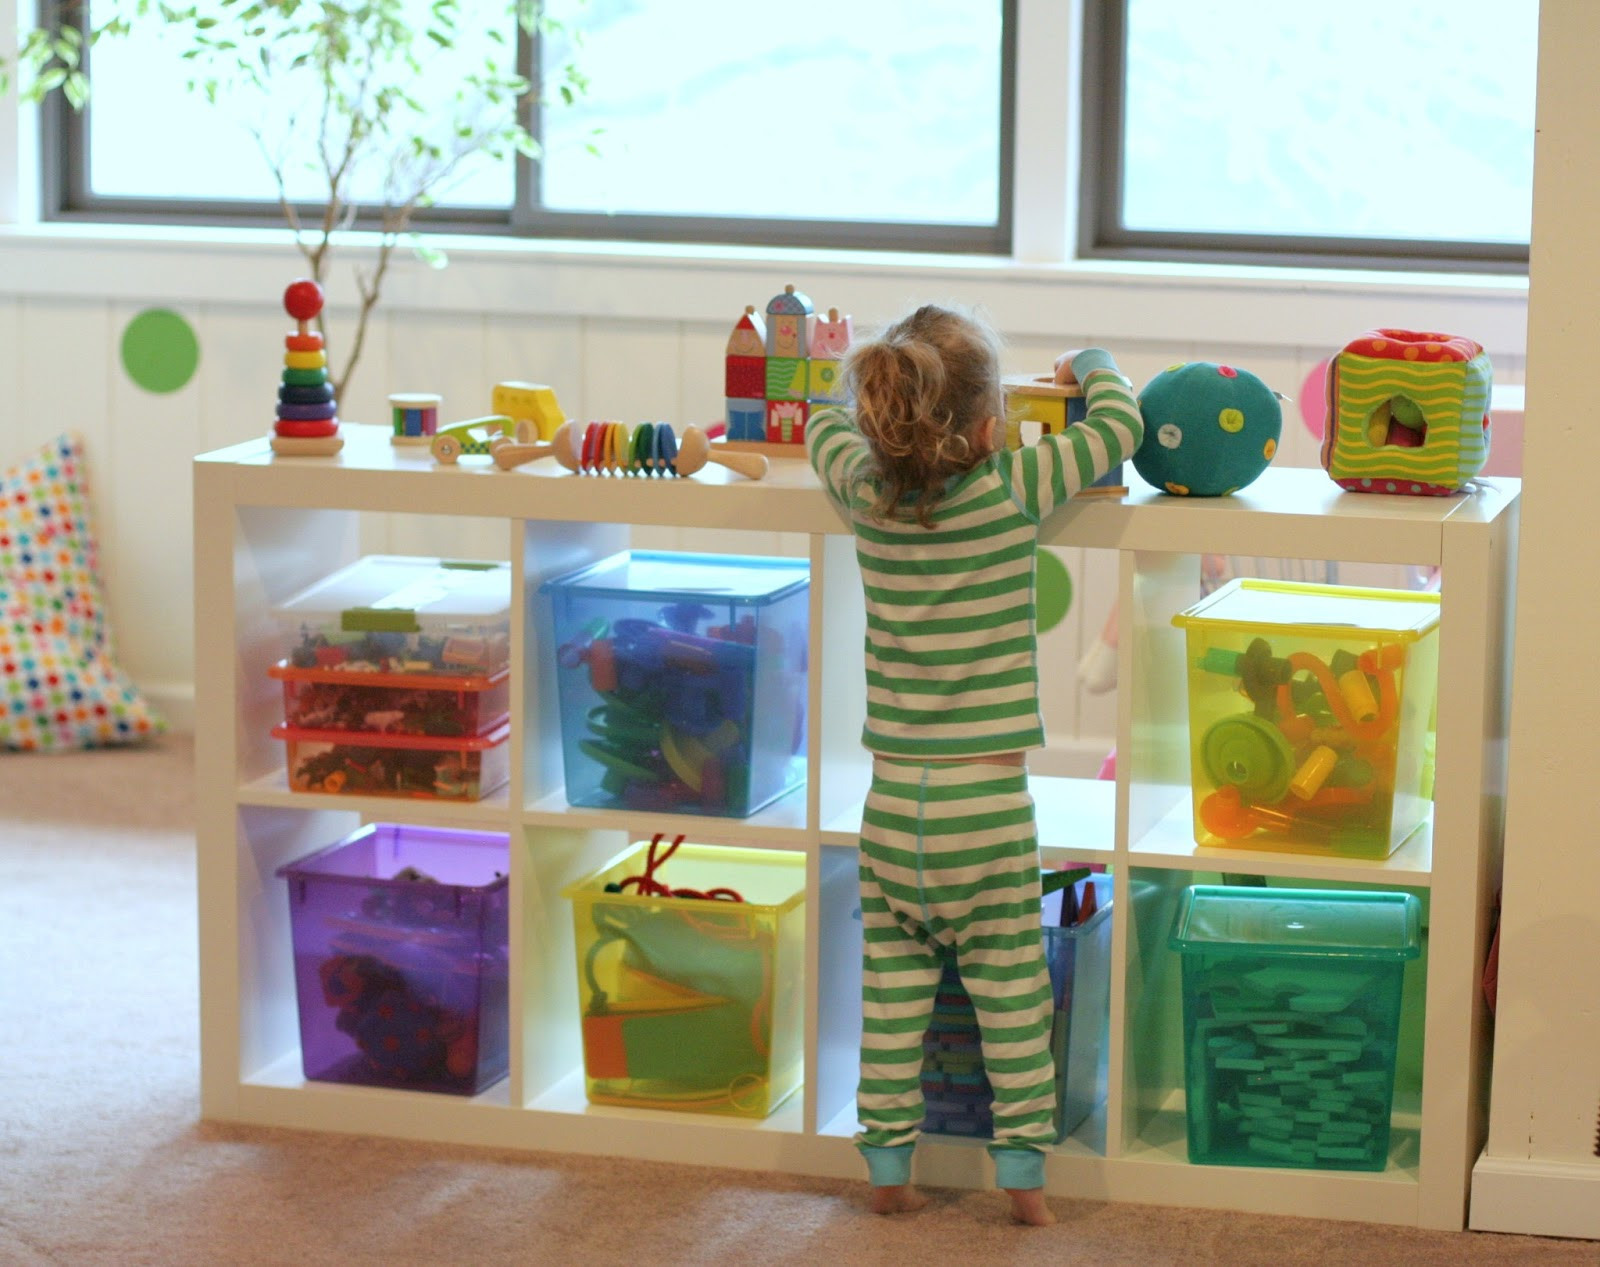 Best ideas about DIY Kids Playroom . Save or Pin Playroom Design DIY Playroom with Rock Wall Now.